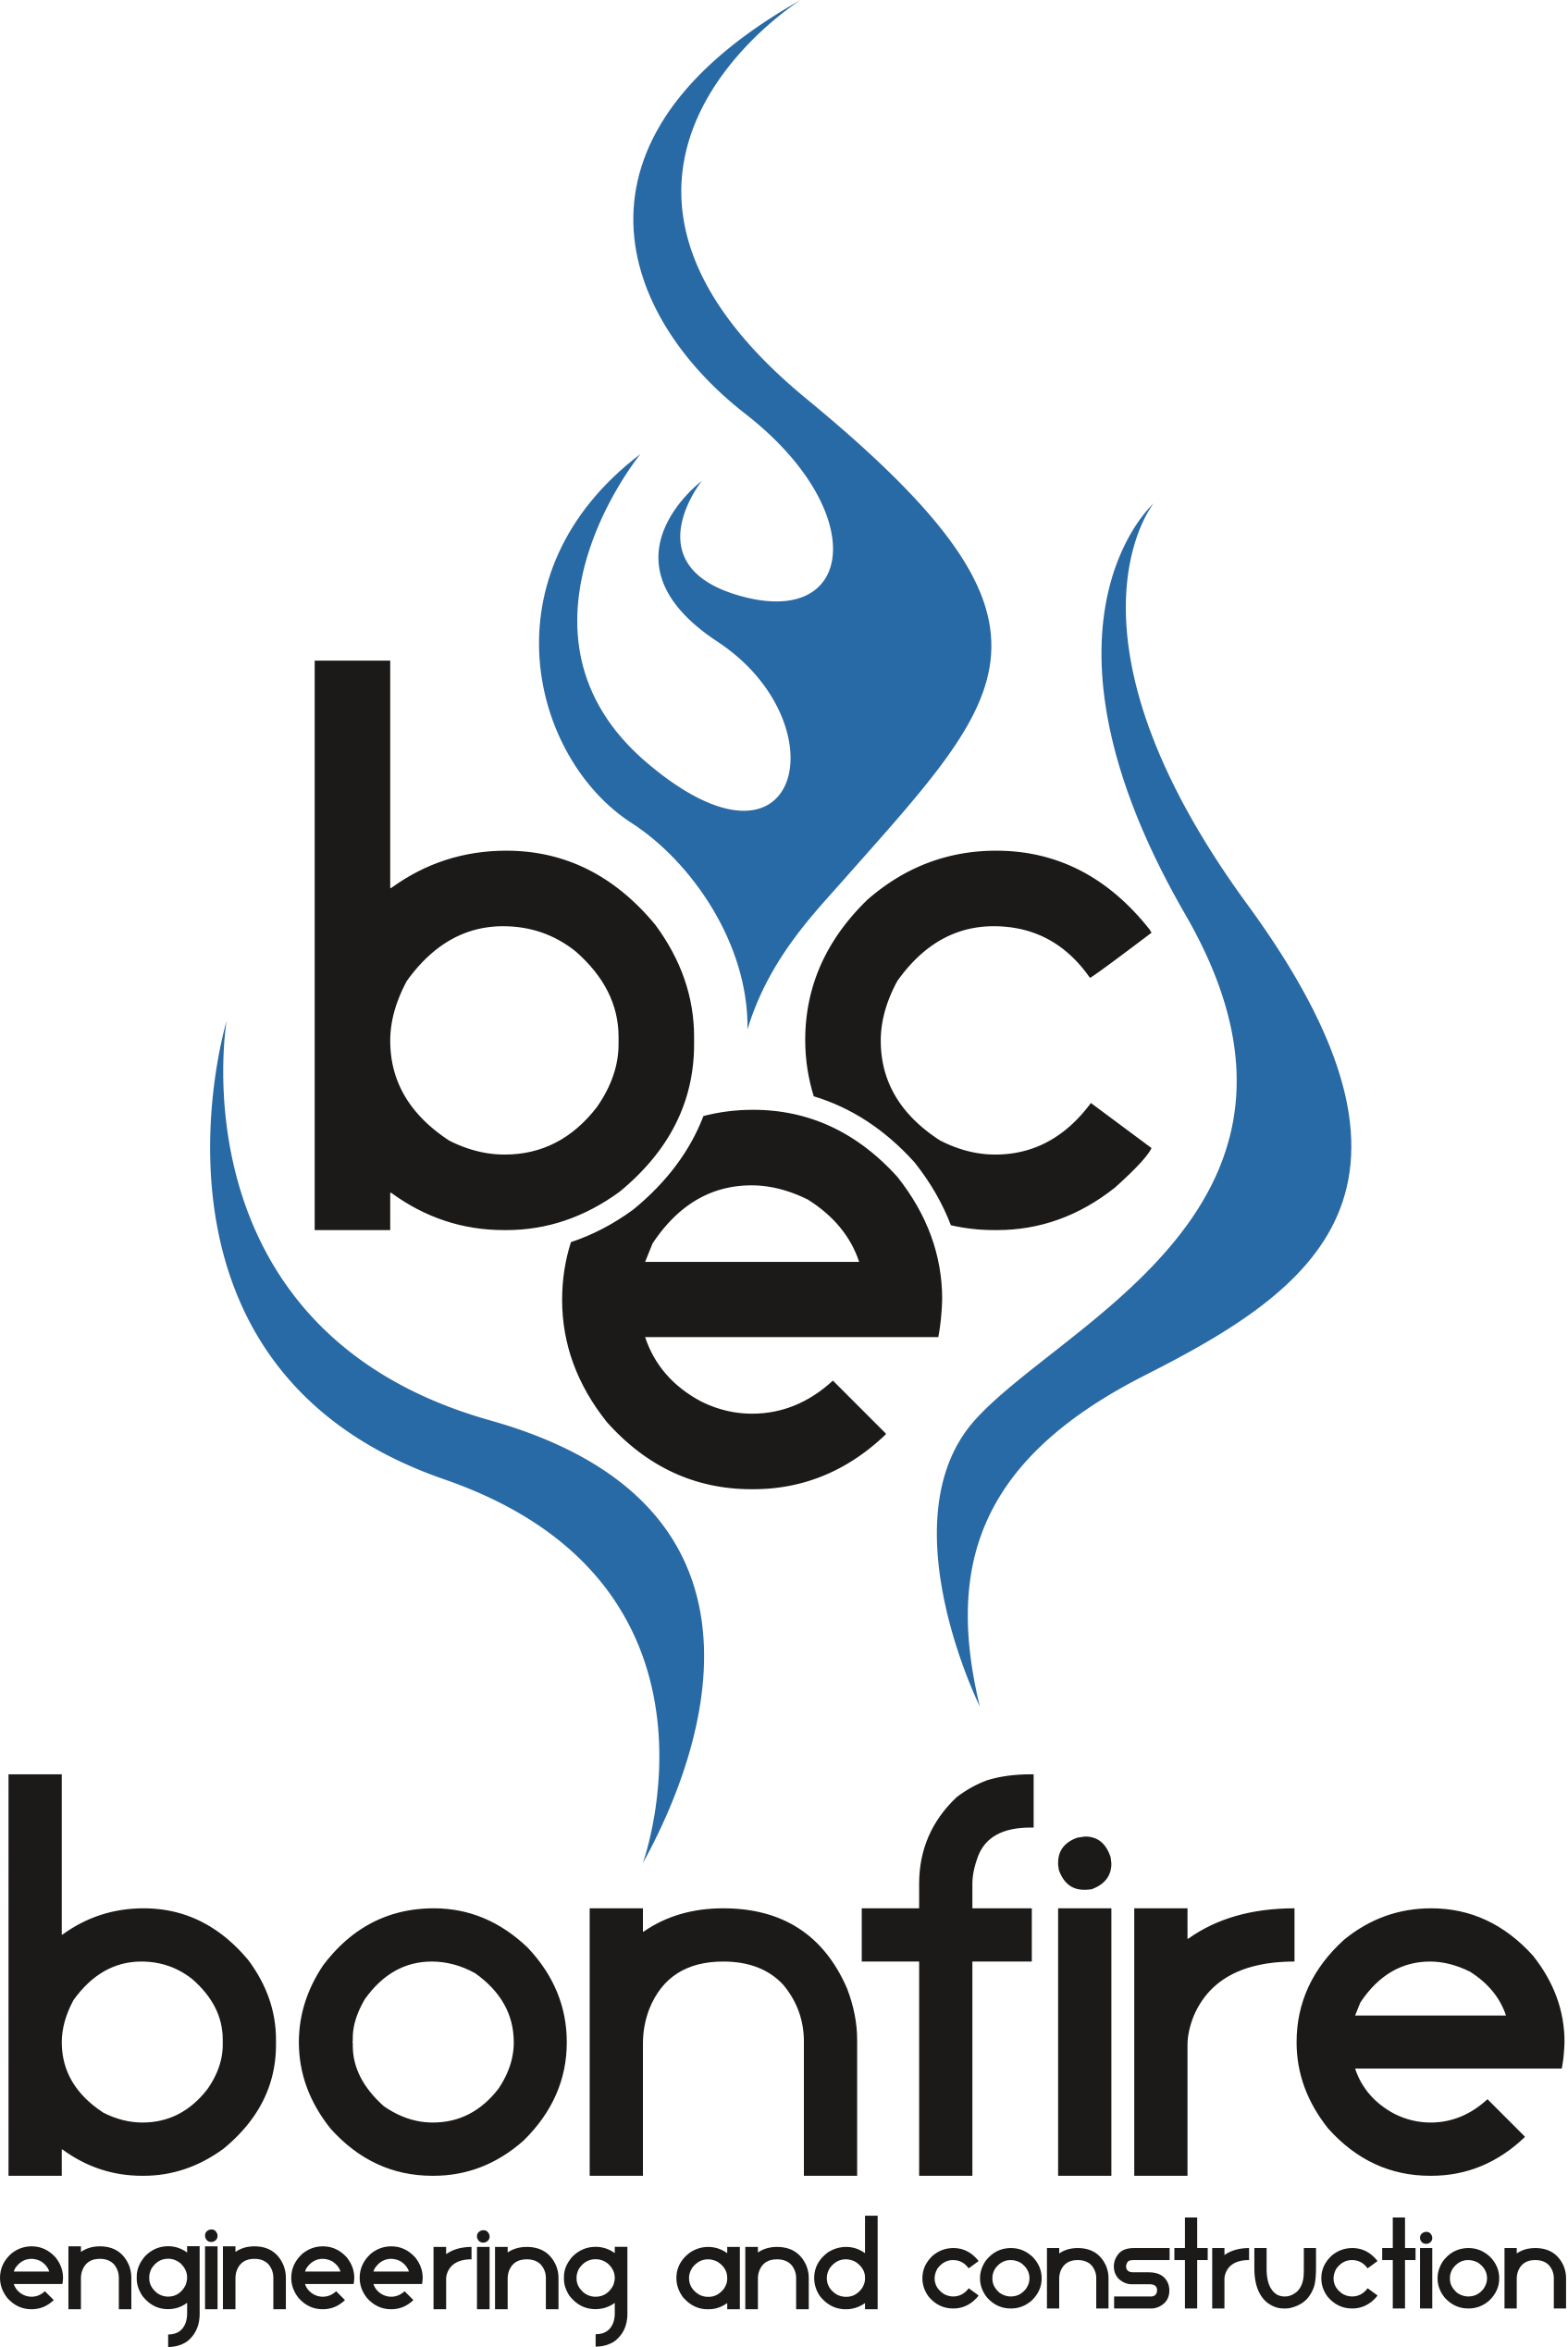 Visionary Broadband Selects Bonfire Engineering & Construction as Contractor for CARES Broadband Program